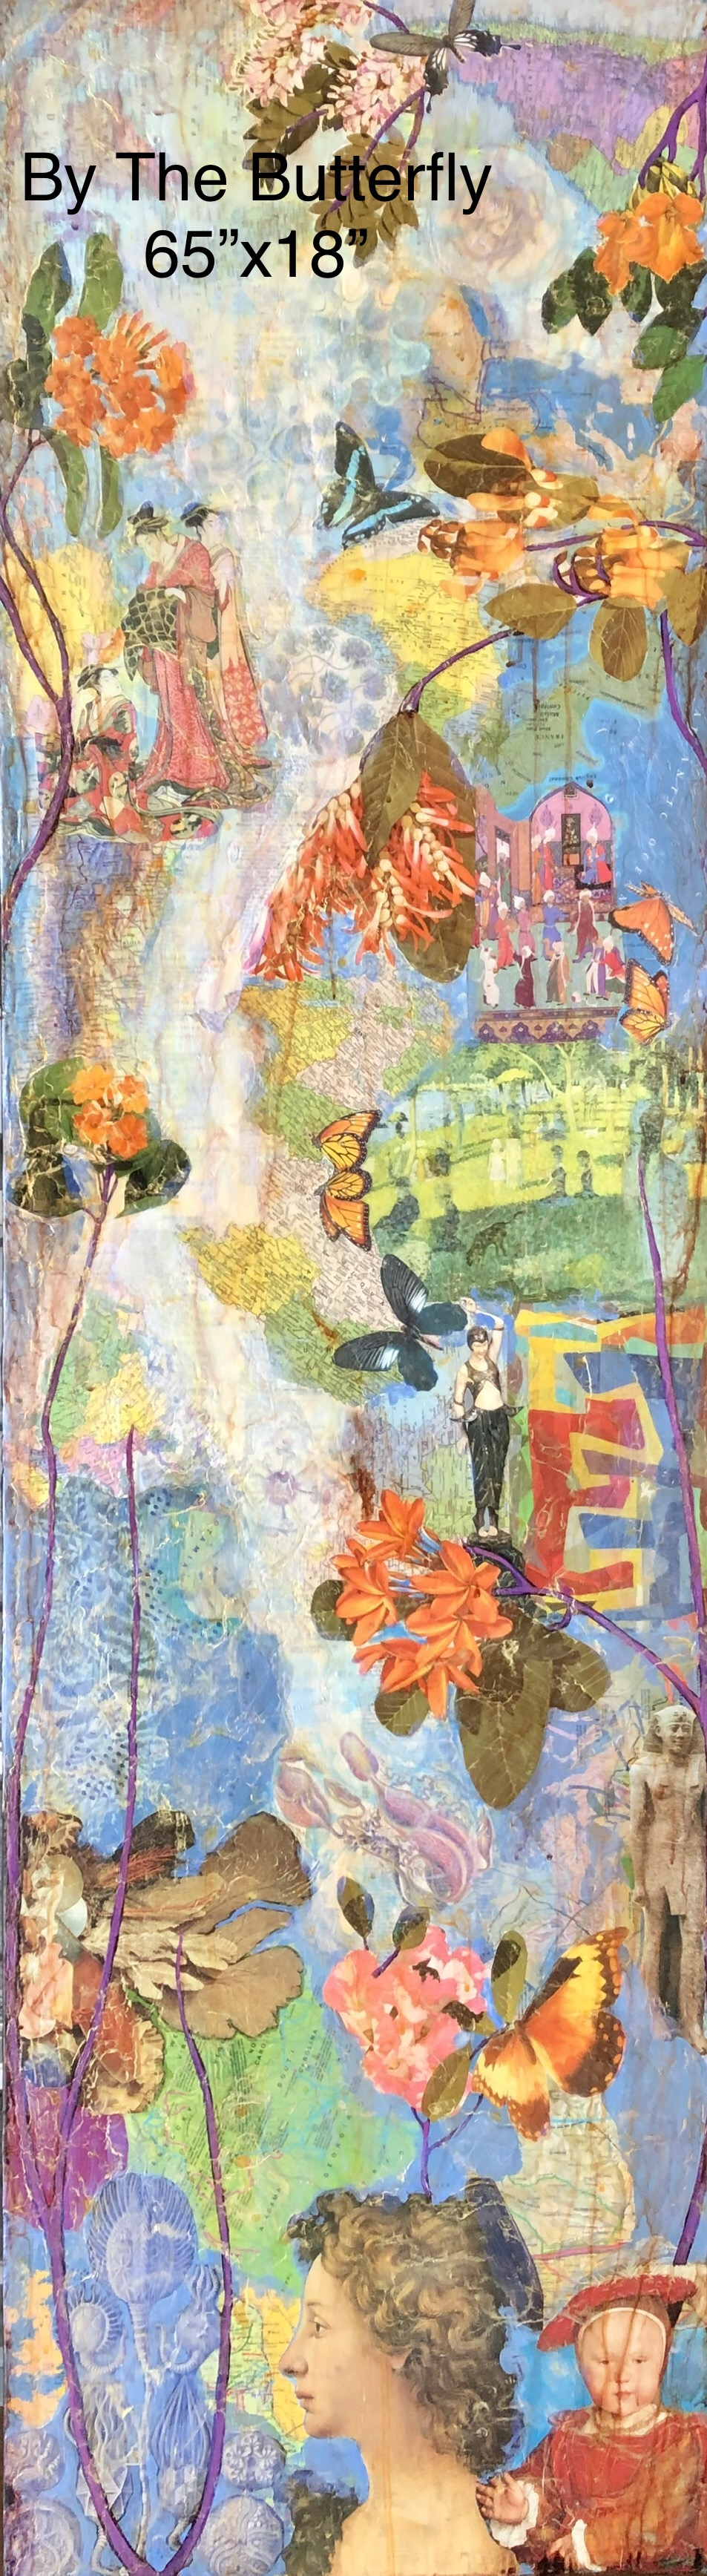 By The Butterfly 65x18